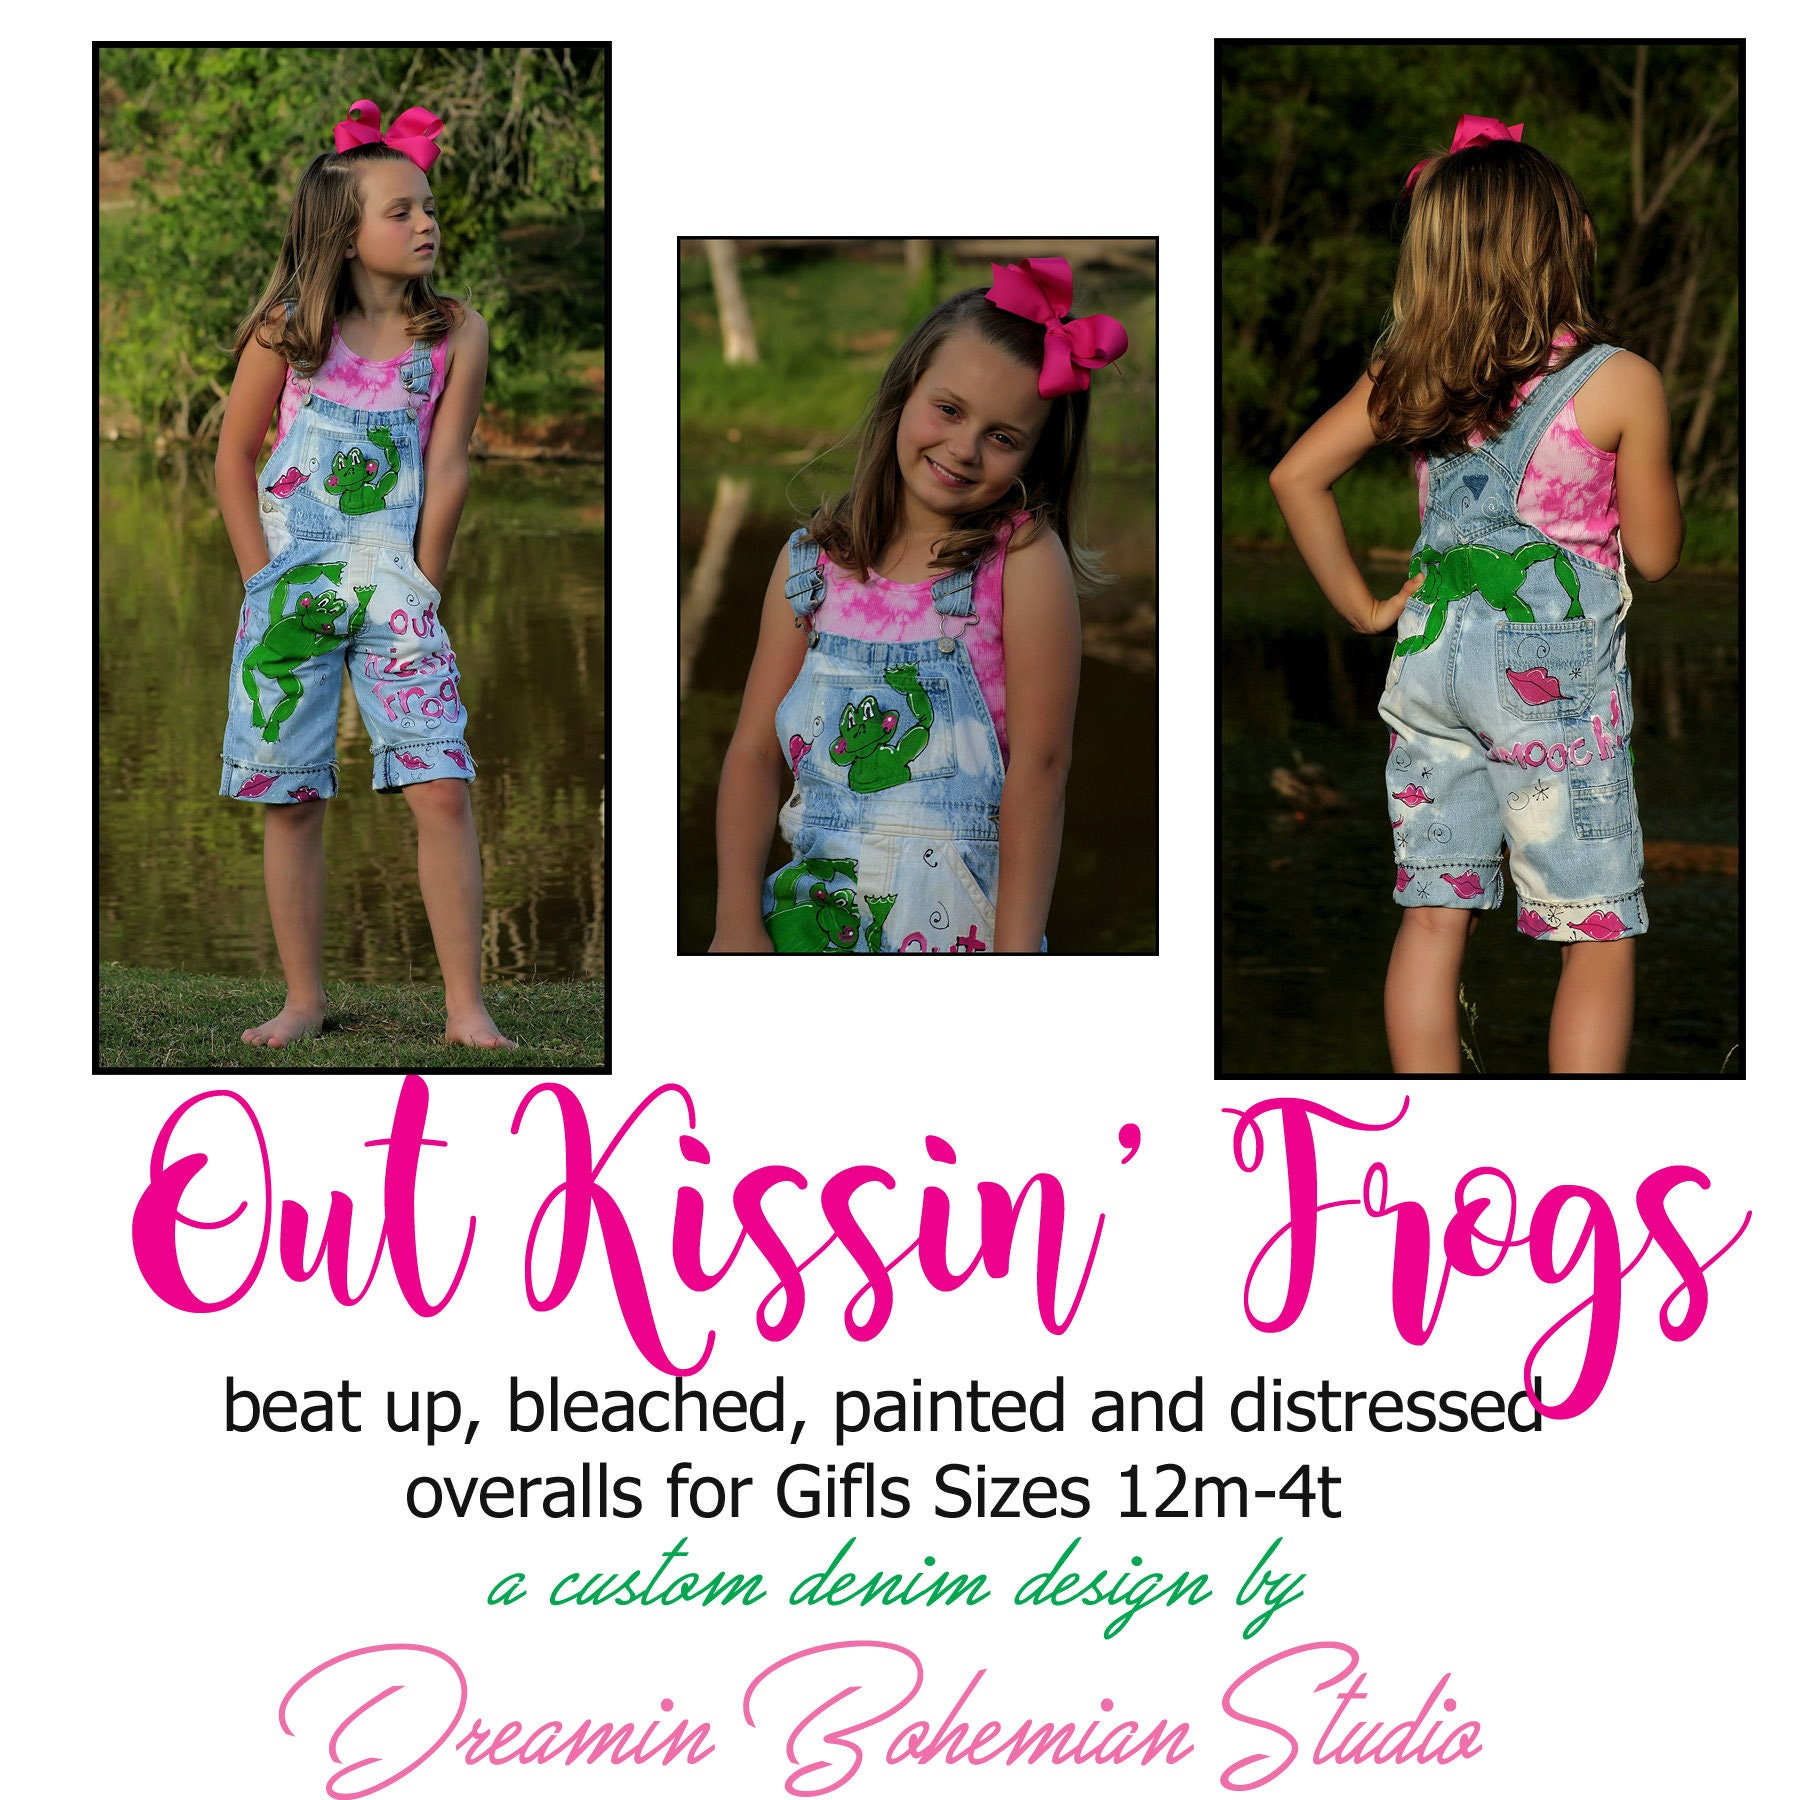 Vintage Overalls & Jumpsuits Distressed Denim Overall Shorts Hand Painted With Green Frogs  Pink Kisses, Out Kissin Original Design For Baby Girls Sizes 12M-4T $105.00 AT vintagedancer.com